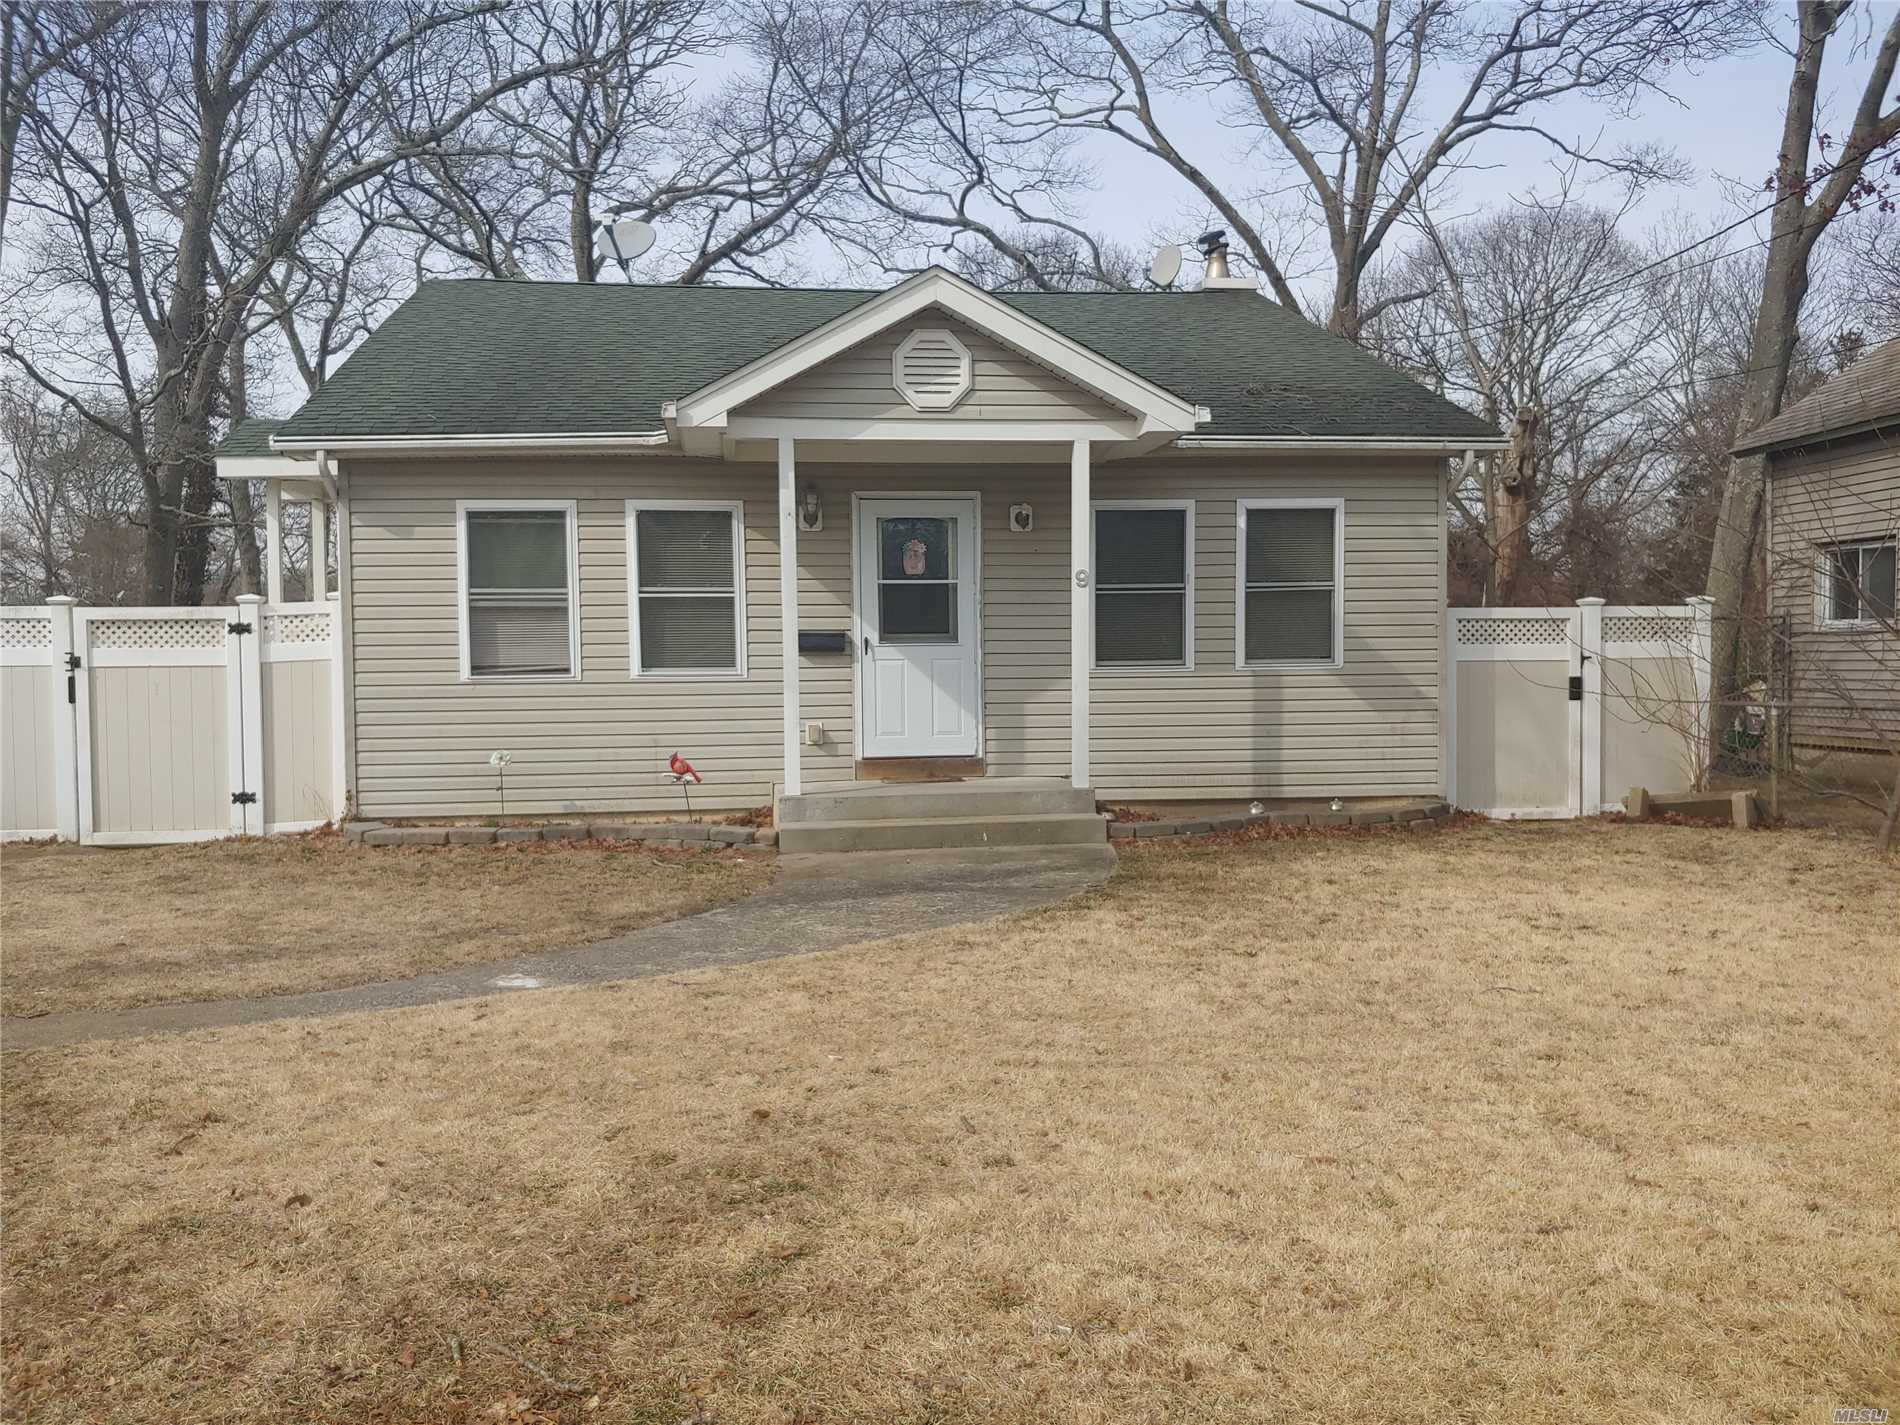 Cute Ranch - Larger Than It Looks!! Features Open Concept Living Room, Kitchen & Dining, 3 Bedrooms, 2 Full Baths, Basement With Inside & Outside Entrance, Cute Fenced In Yard, Deck And Extremely Low Taxes!!! Great Tenant In Place - Would Love To Stay If Possible.